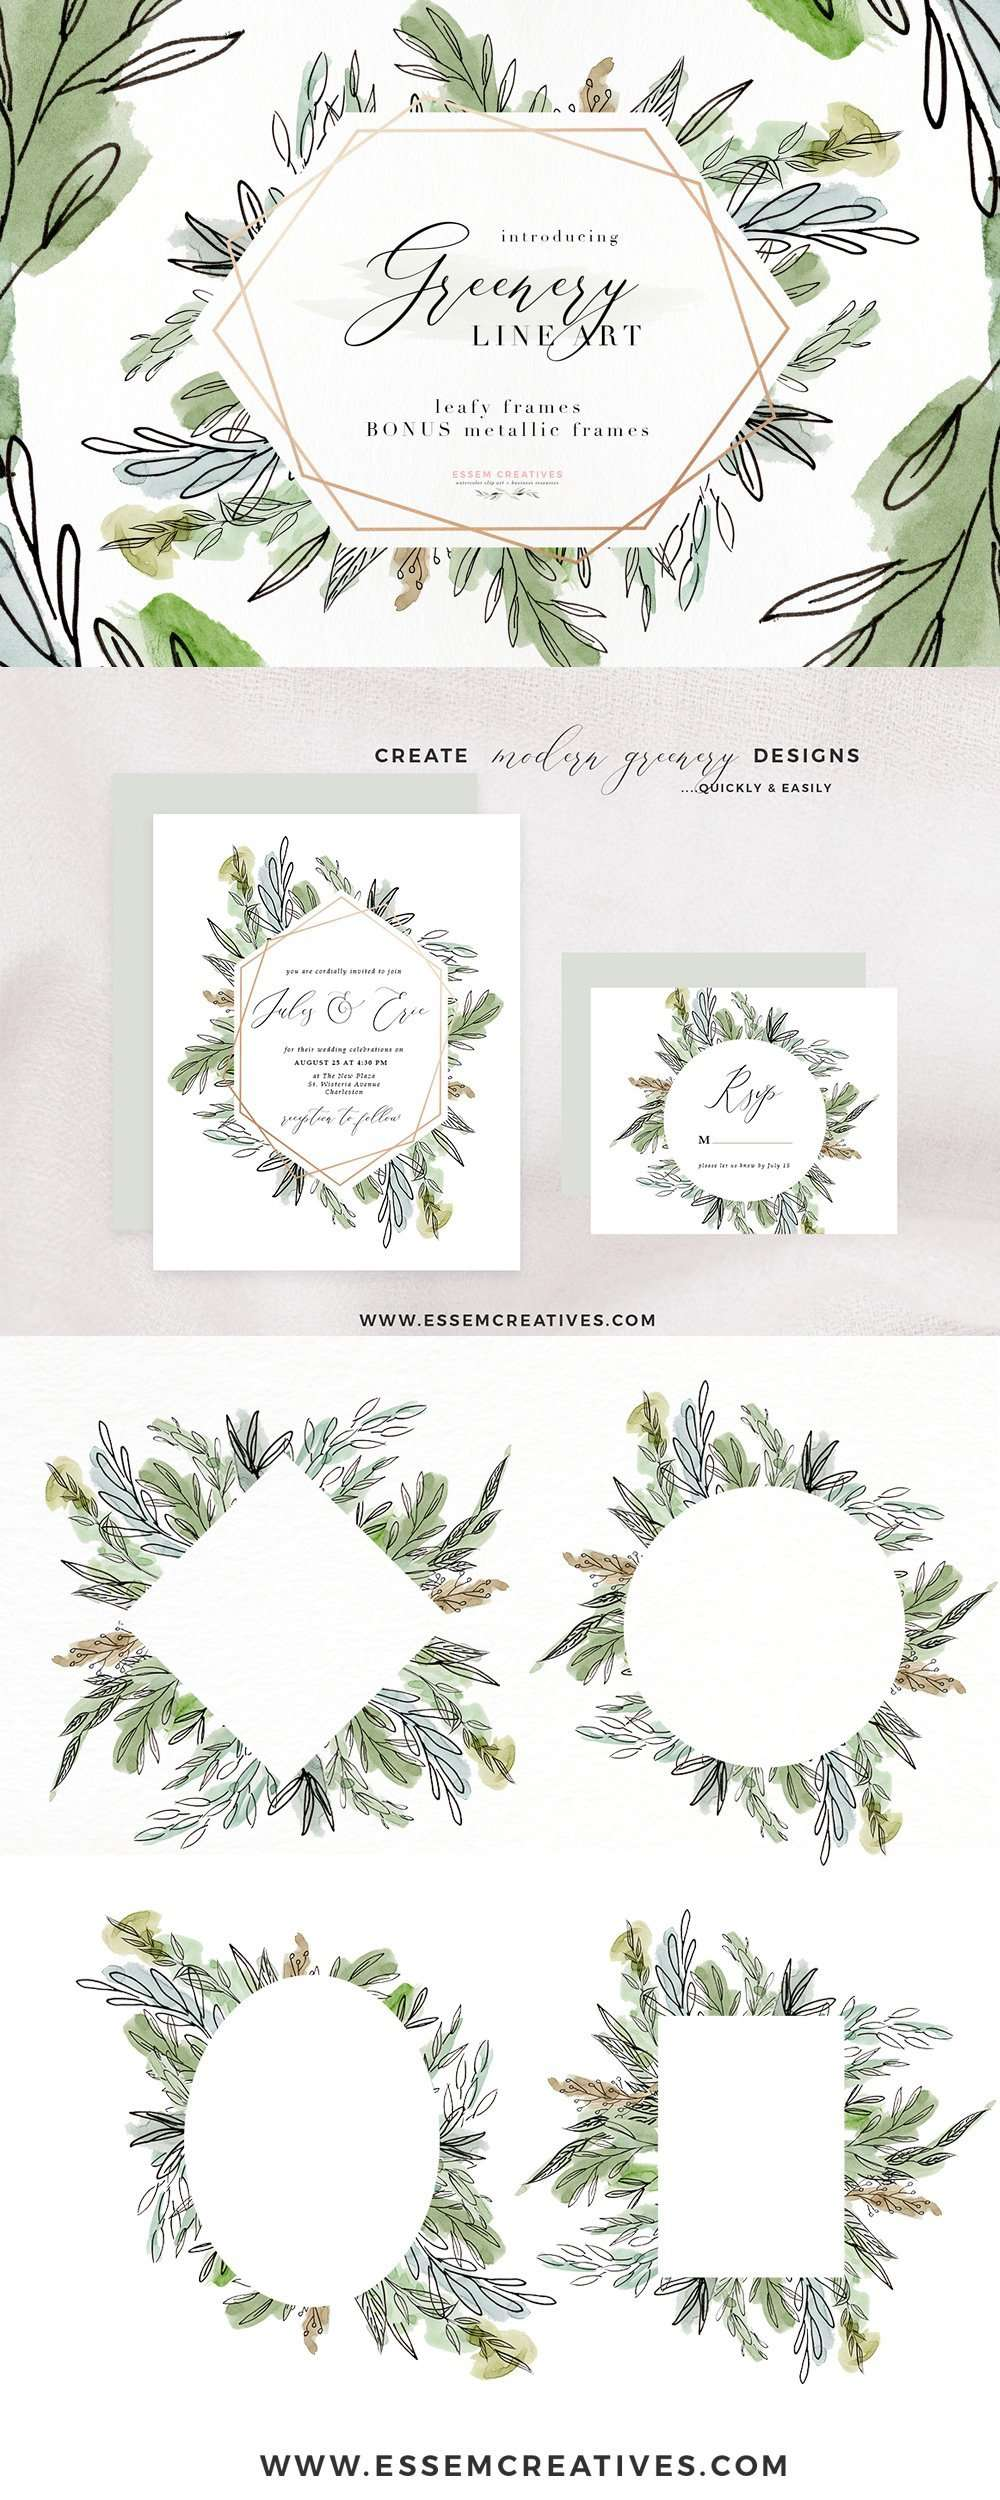 Watercolor Greenery Line Art PNG Clipart, Tropical Rustic Botanical Wedding Invitation Logo Branding | Perfect for Watercolor wedding invitations, save the date, bridal shower party, baby shower decor, greenery wedding tropical wedding woodland decor, rustic fine art modern botanical illustrations, scrapbooking paper, greenery borders. CLICK to see more and start creating>>